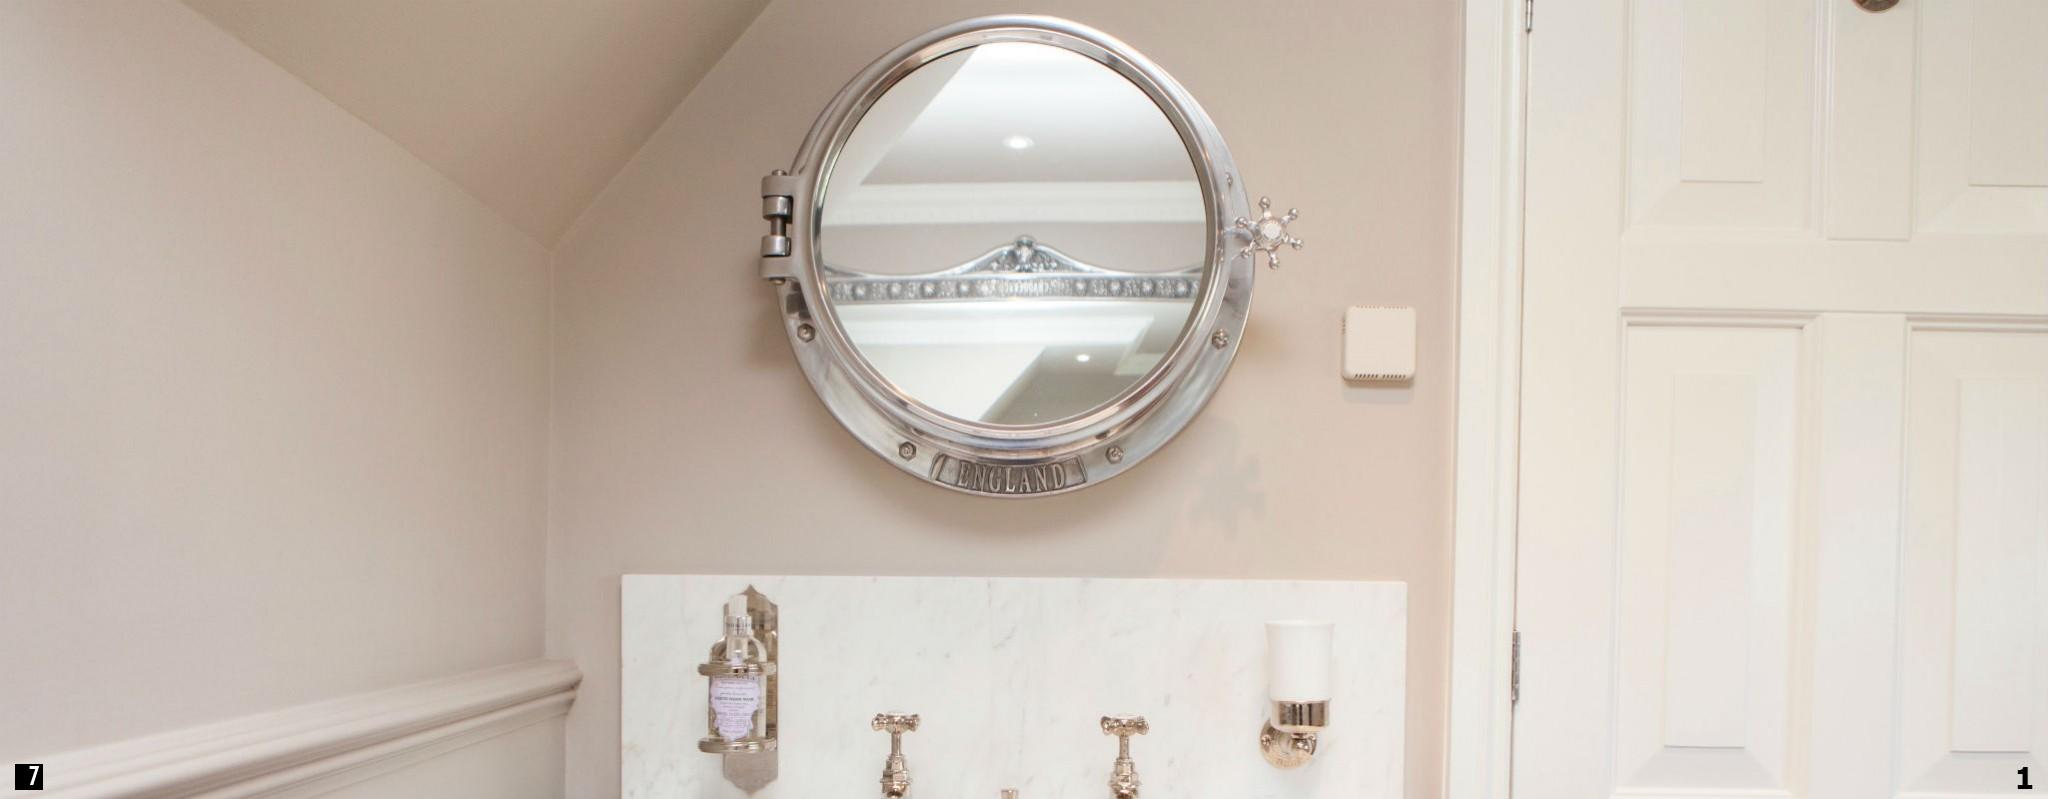 Porthole Mirror Cabinet , Porthole , Porthole Mirror , Porthole Mirror in Bathroom , Bathroom Porthole